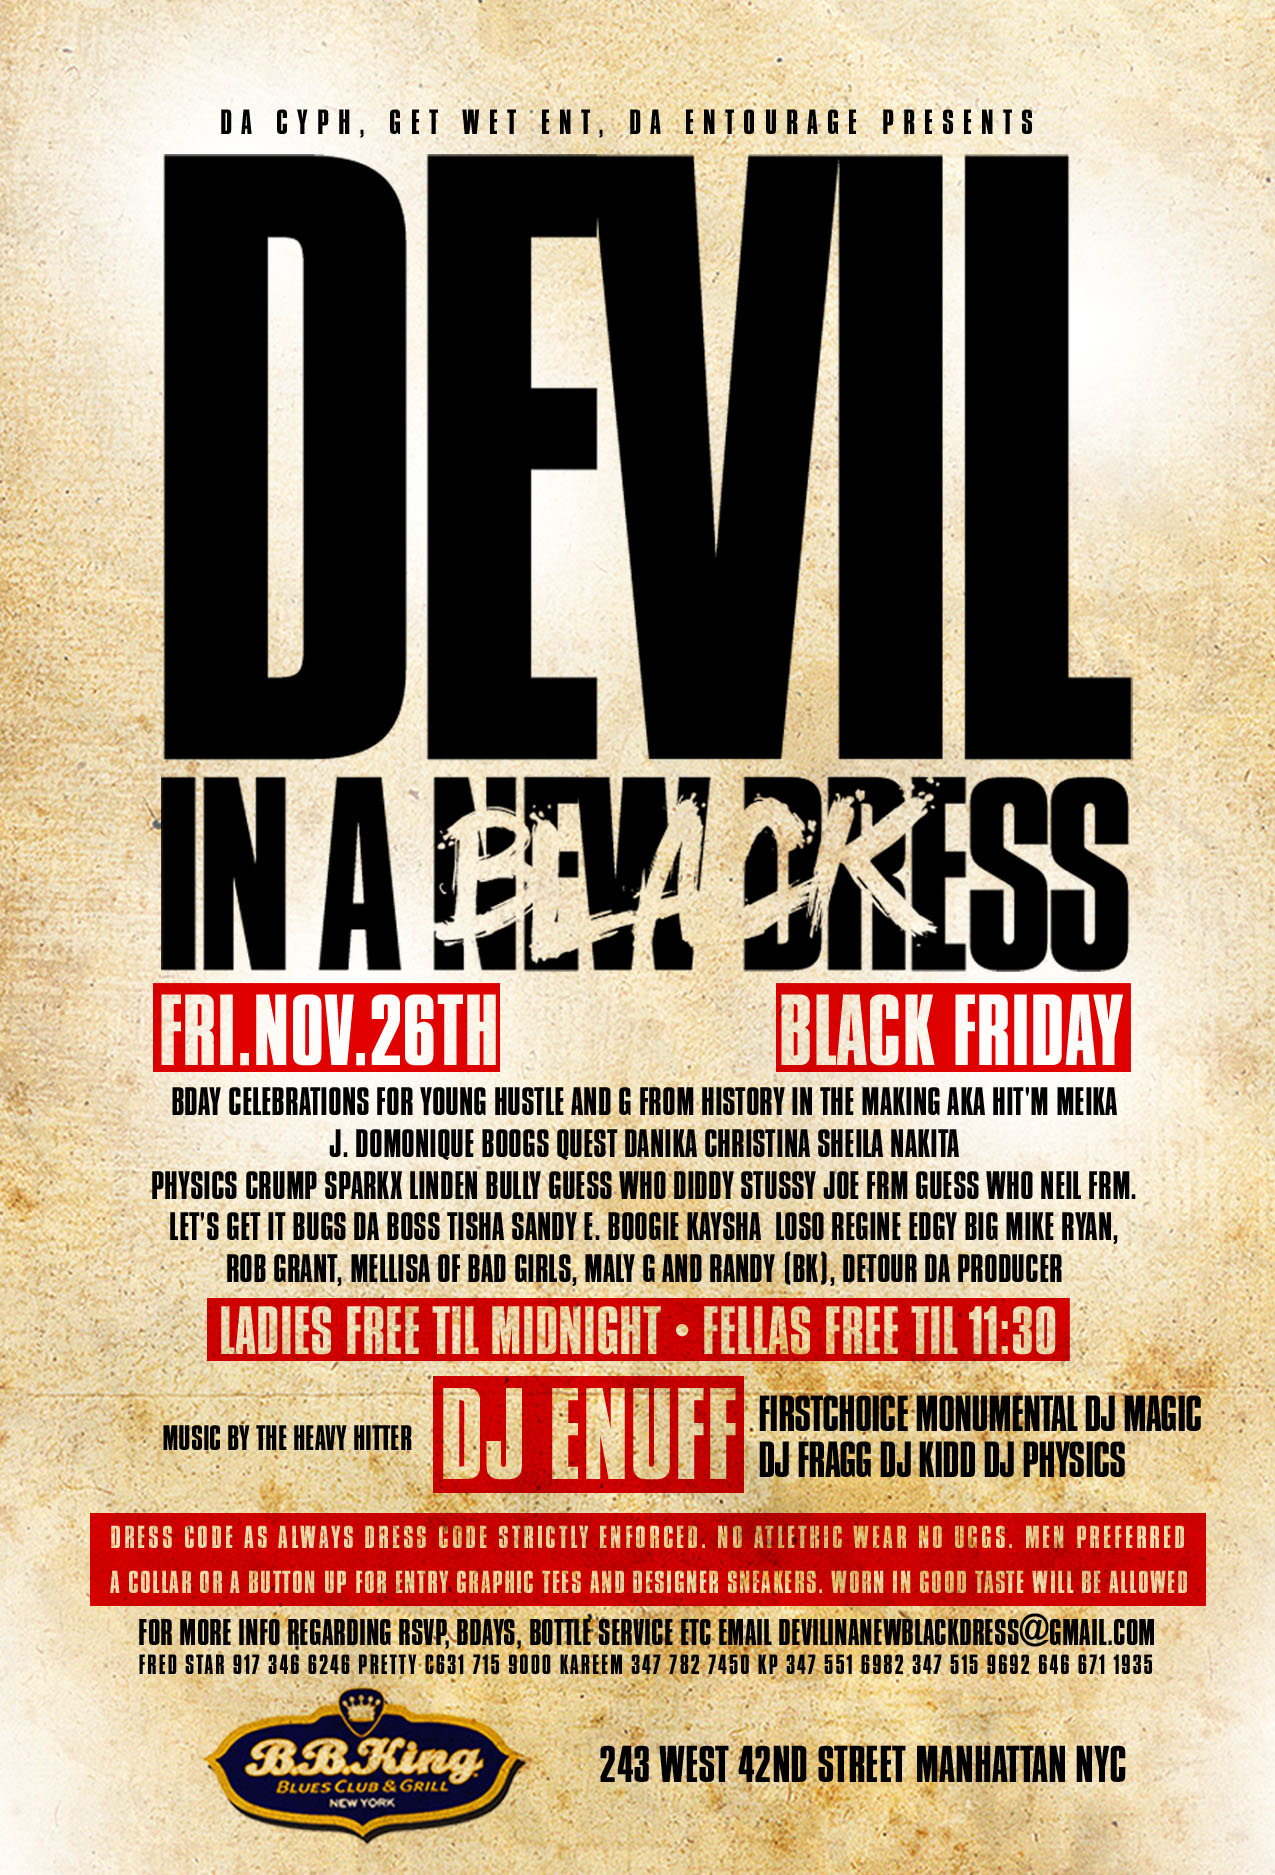 what font is the DEVIL in this flyer please?